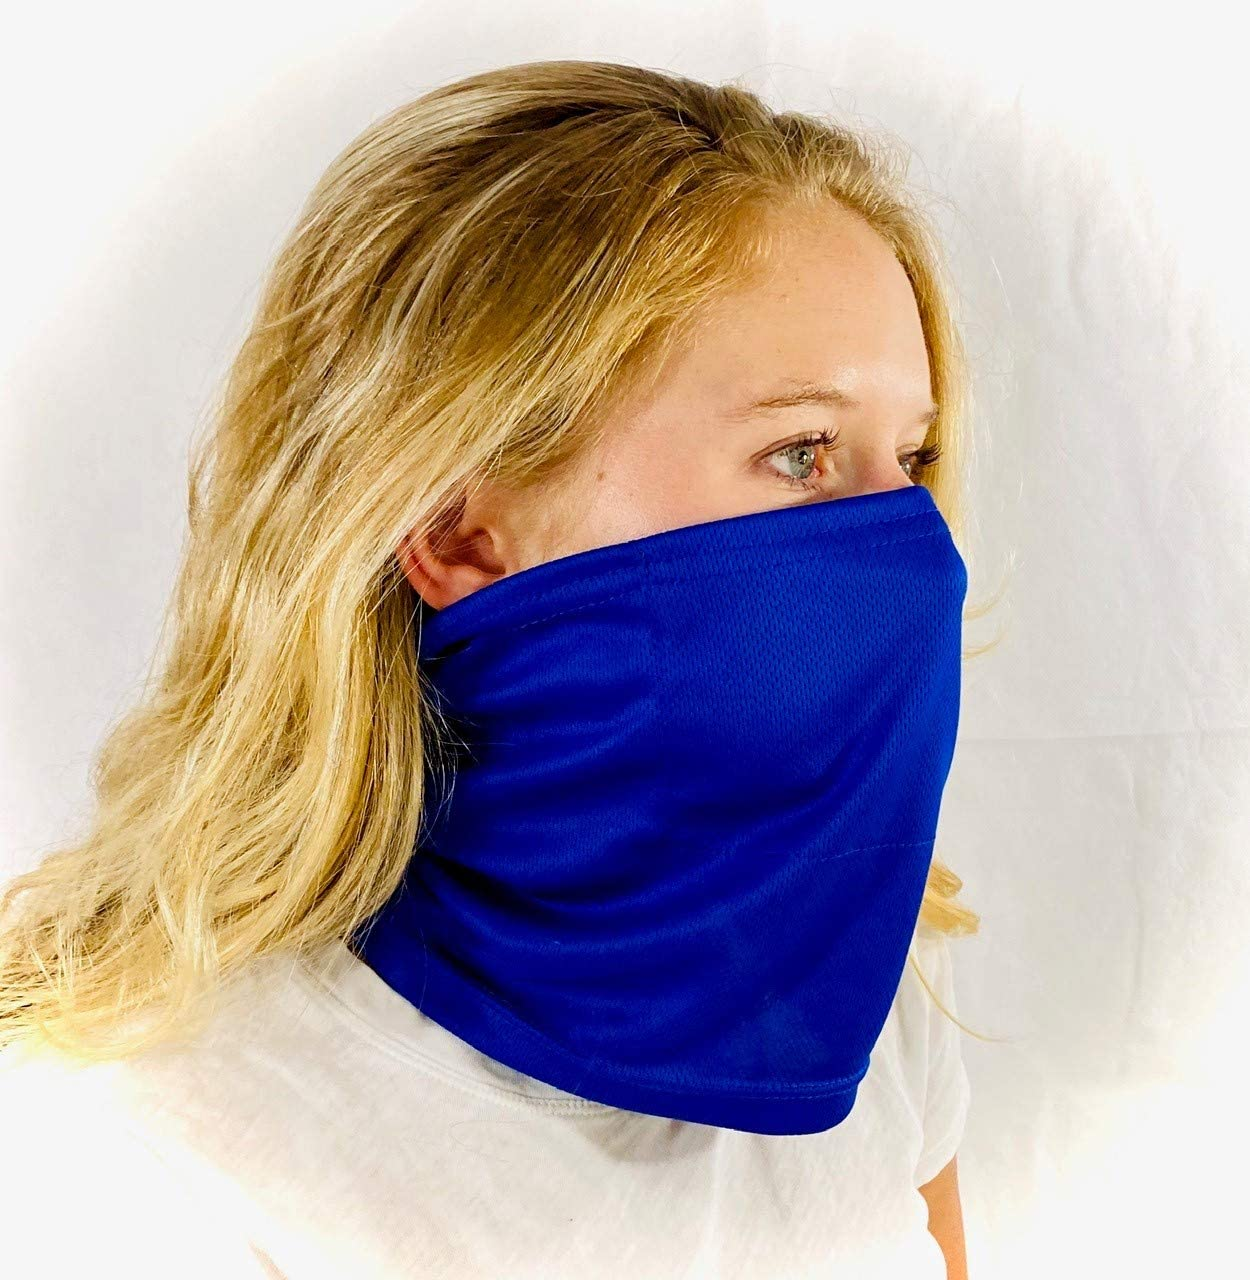 Washable Face Masks with Interior Filter Pocket Gaiter Guard Pro Neck Gaiter Face Mask for Women and Men Breathable Face Covering Bandana Face Mask Blue Unisex Lightweight